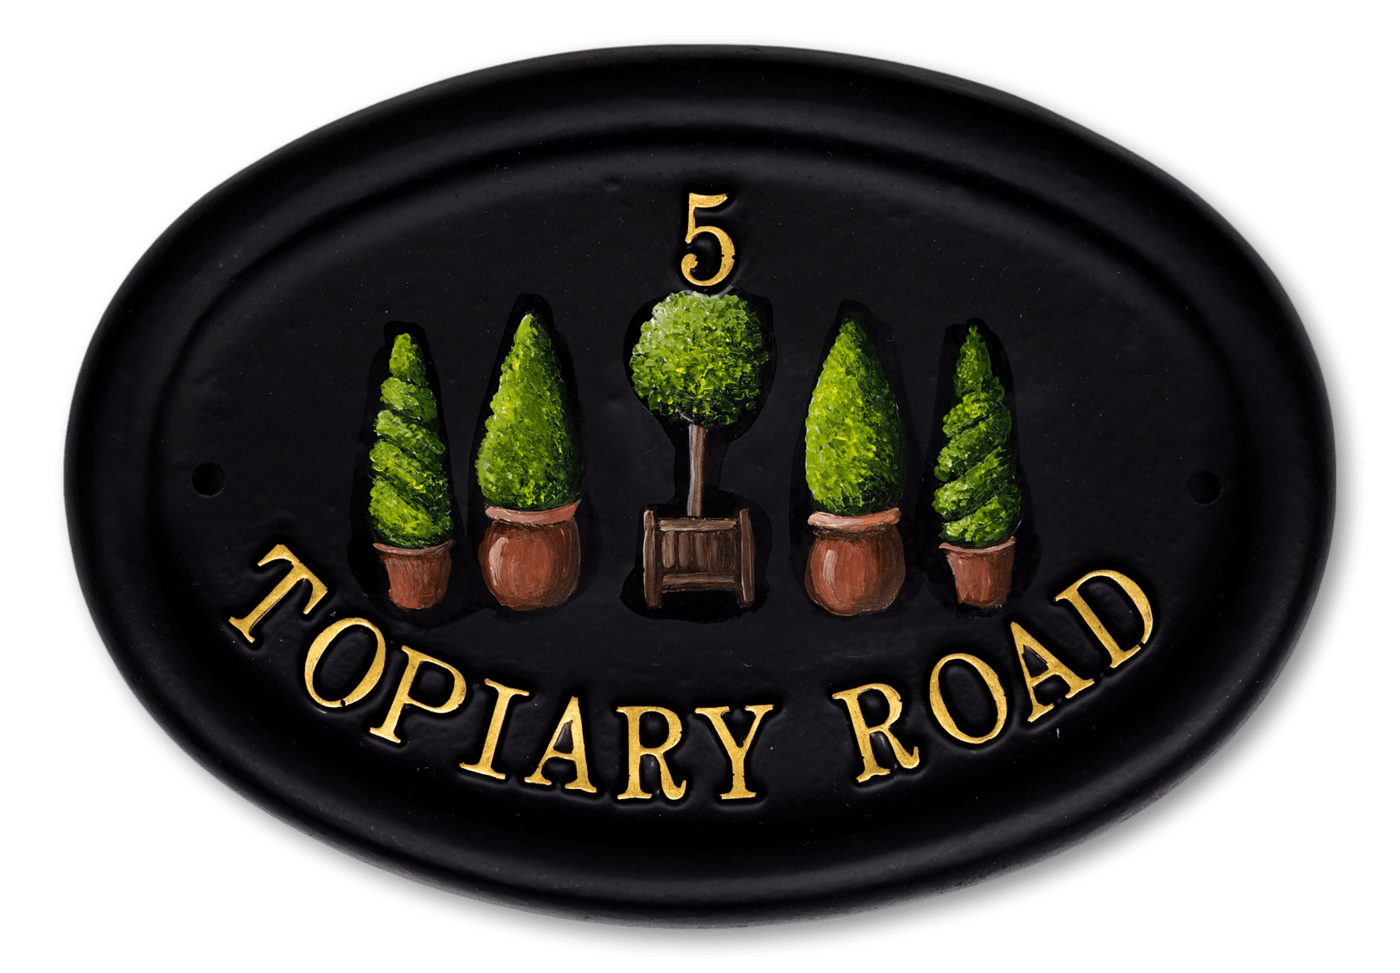 Topiary house sign